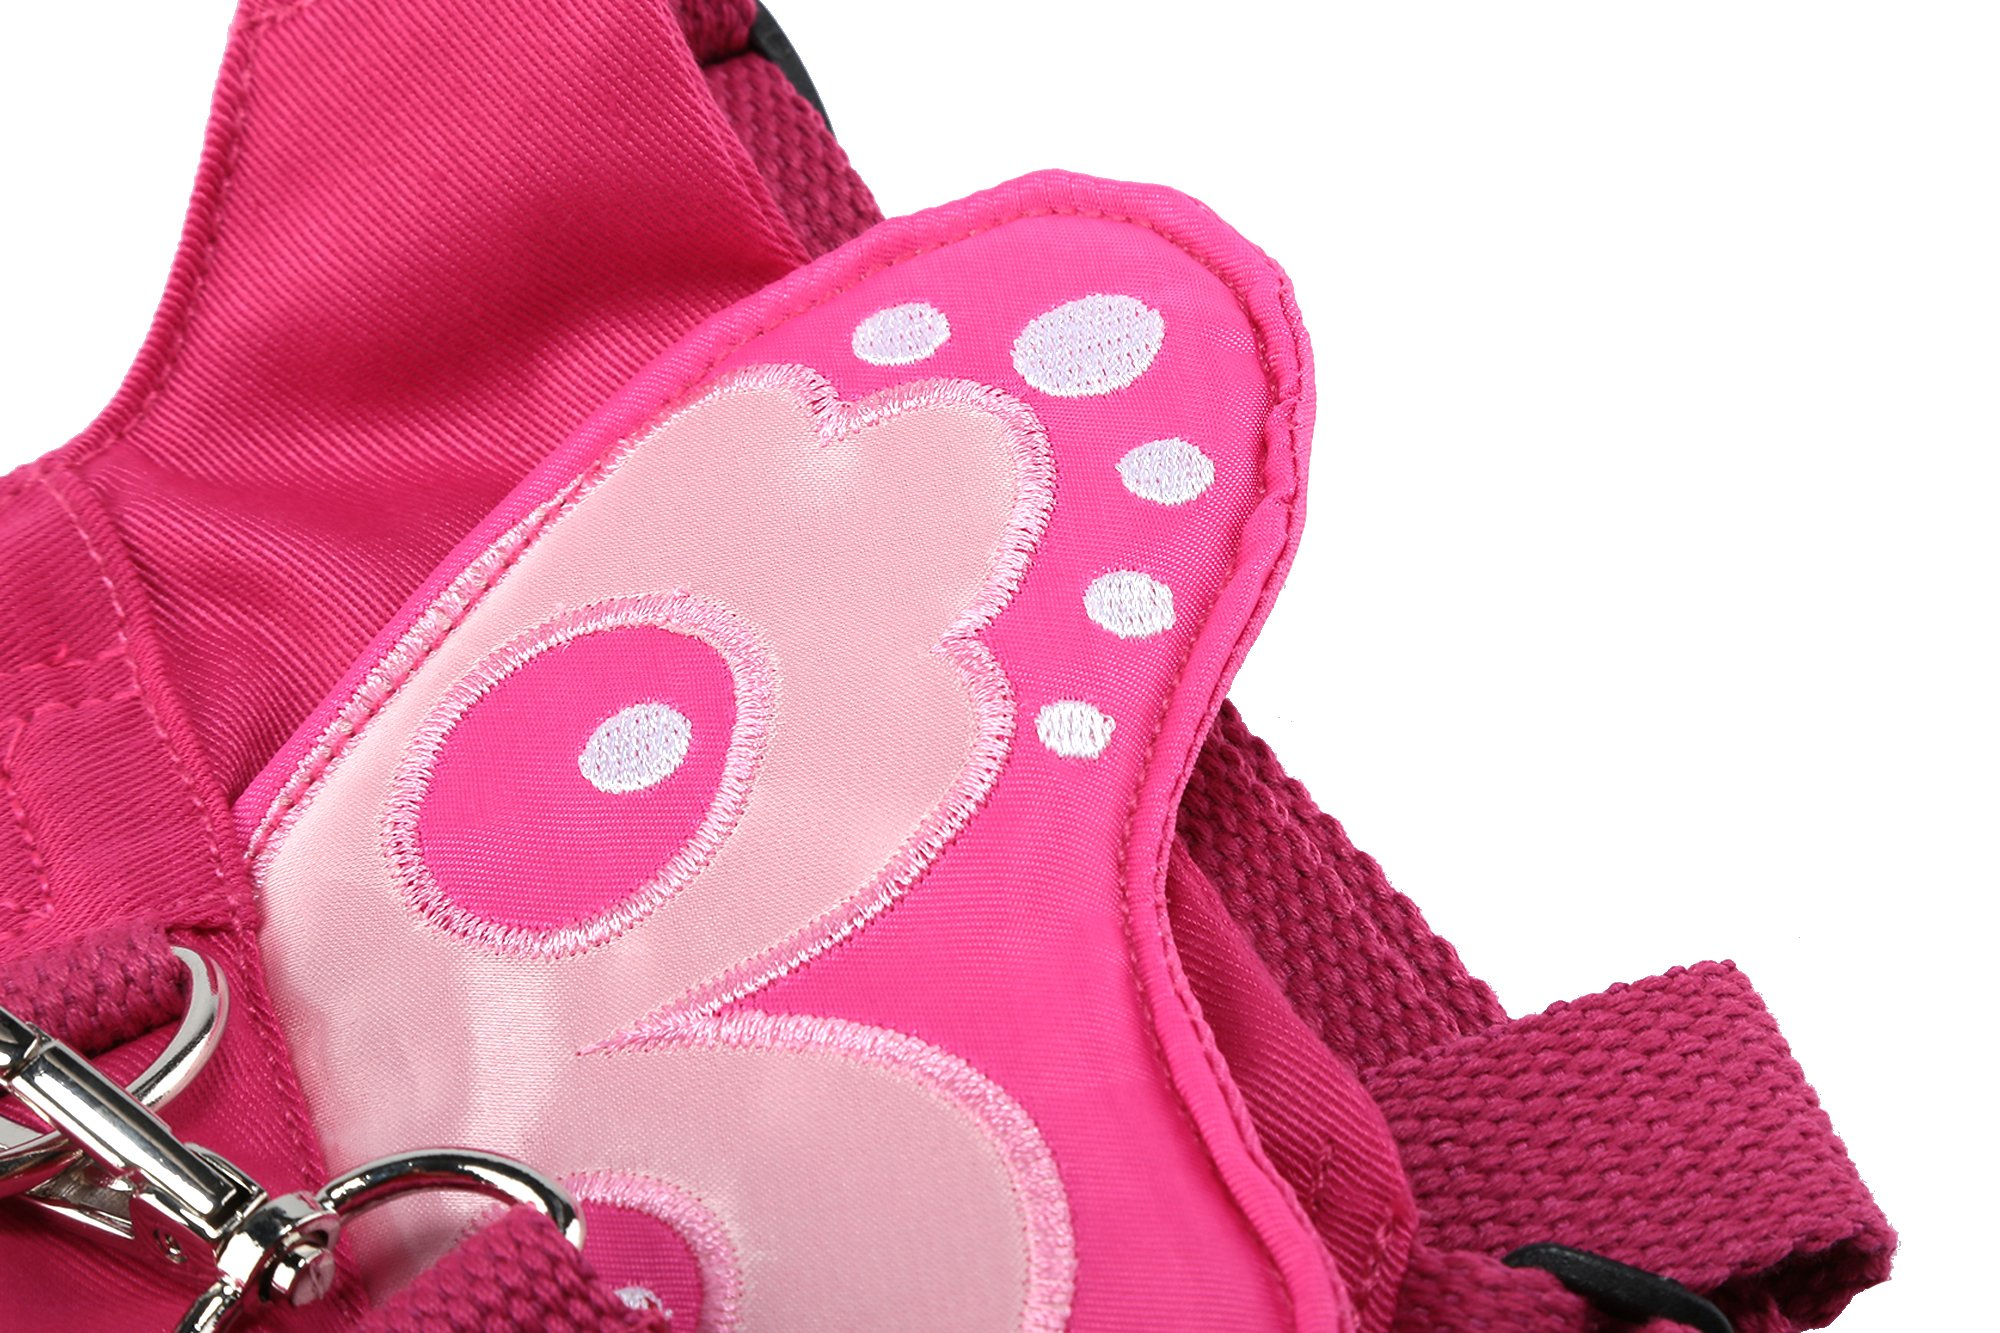 EPLAZA Baby Toddler Walking Safety Butterfly Belt Harness with Leash Child Kid Assistant Strap (a) by EPLAZA (Image #7)